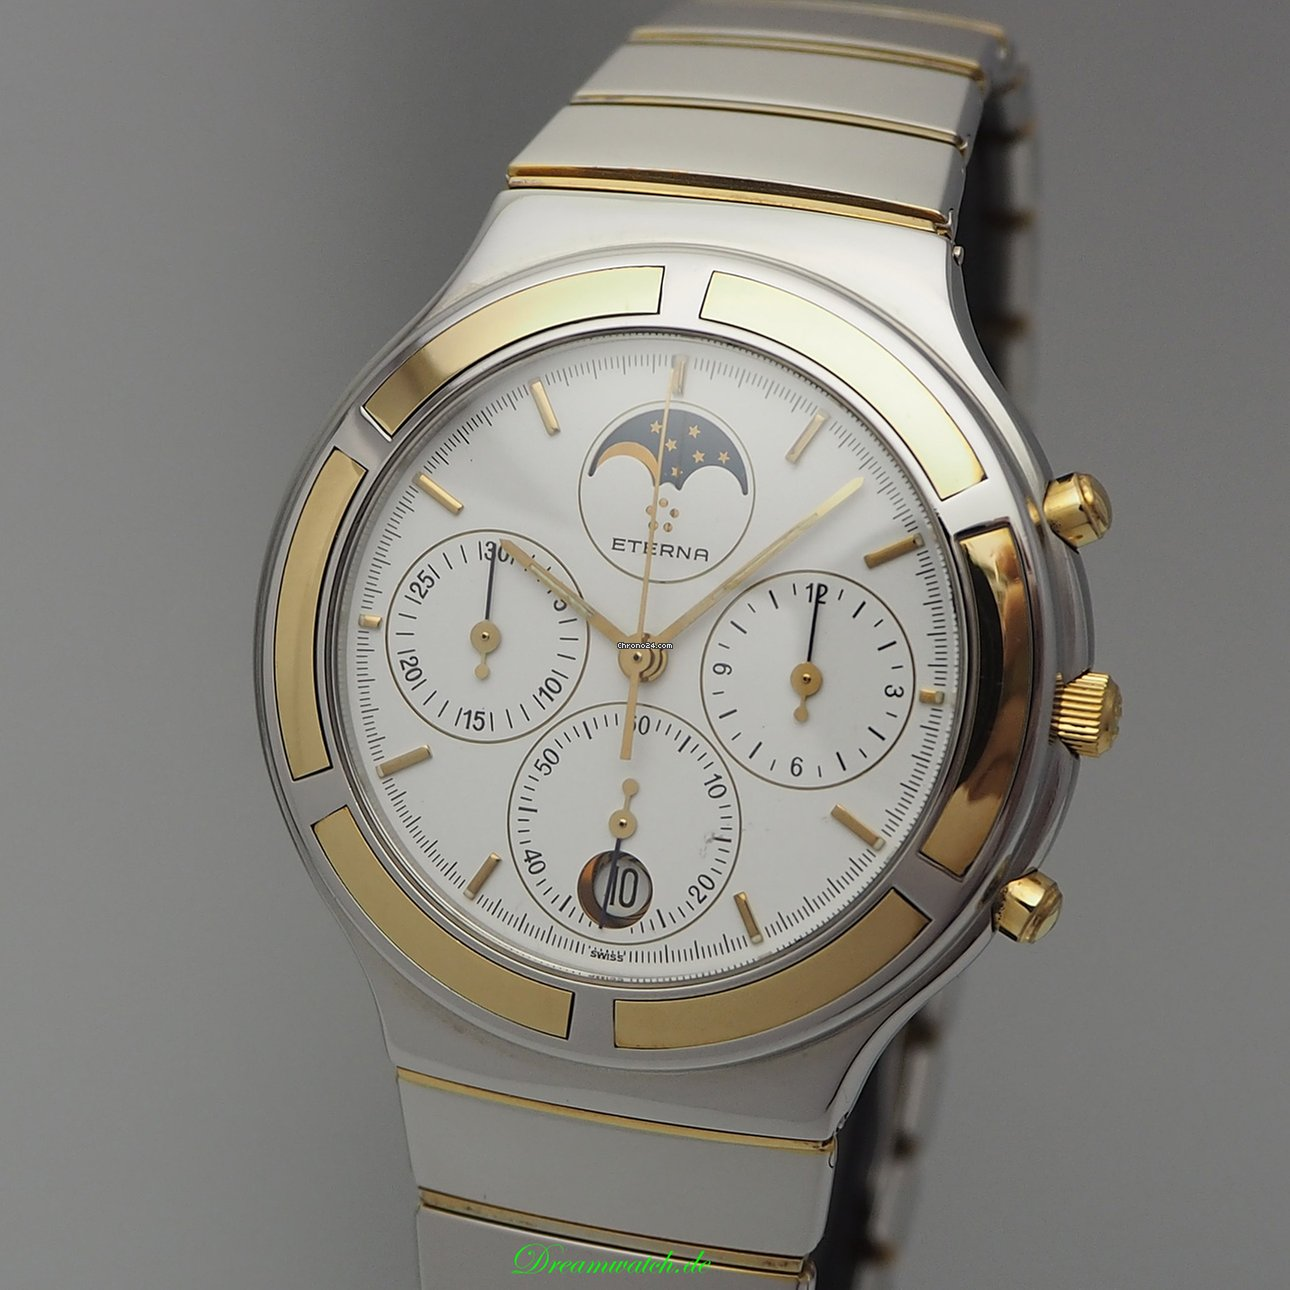 Details about ETERNA Airforce Eterna Matic Automatic Watch Ref. 8417.41 (Like New Condition)